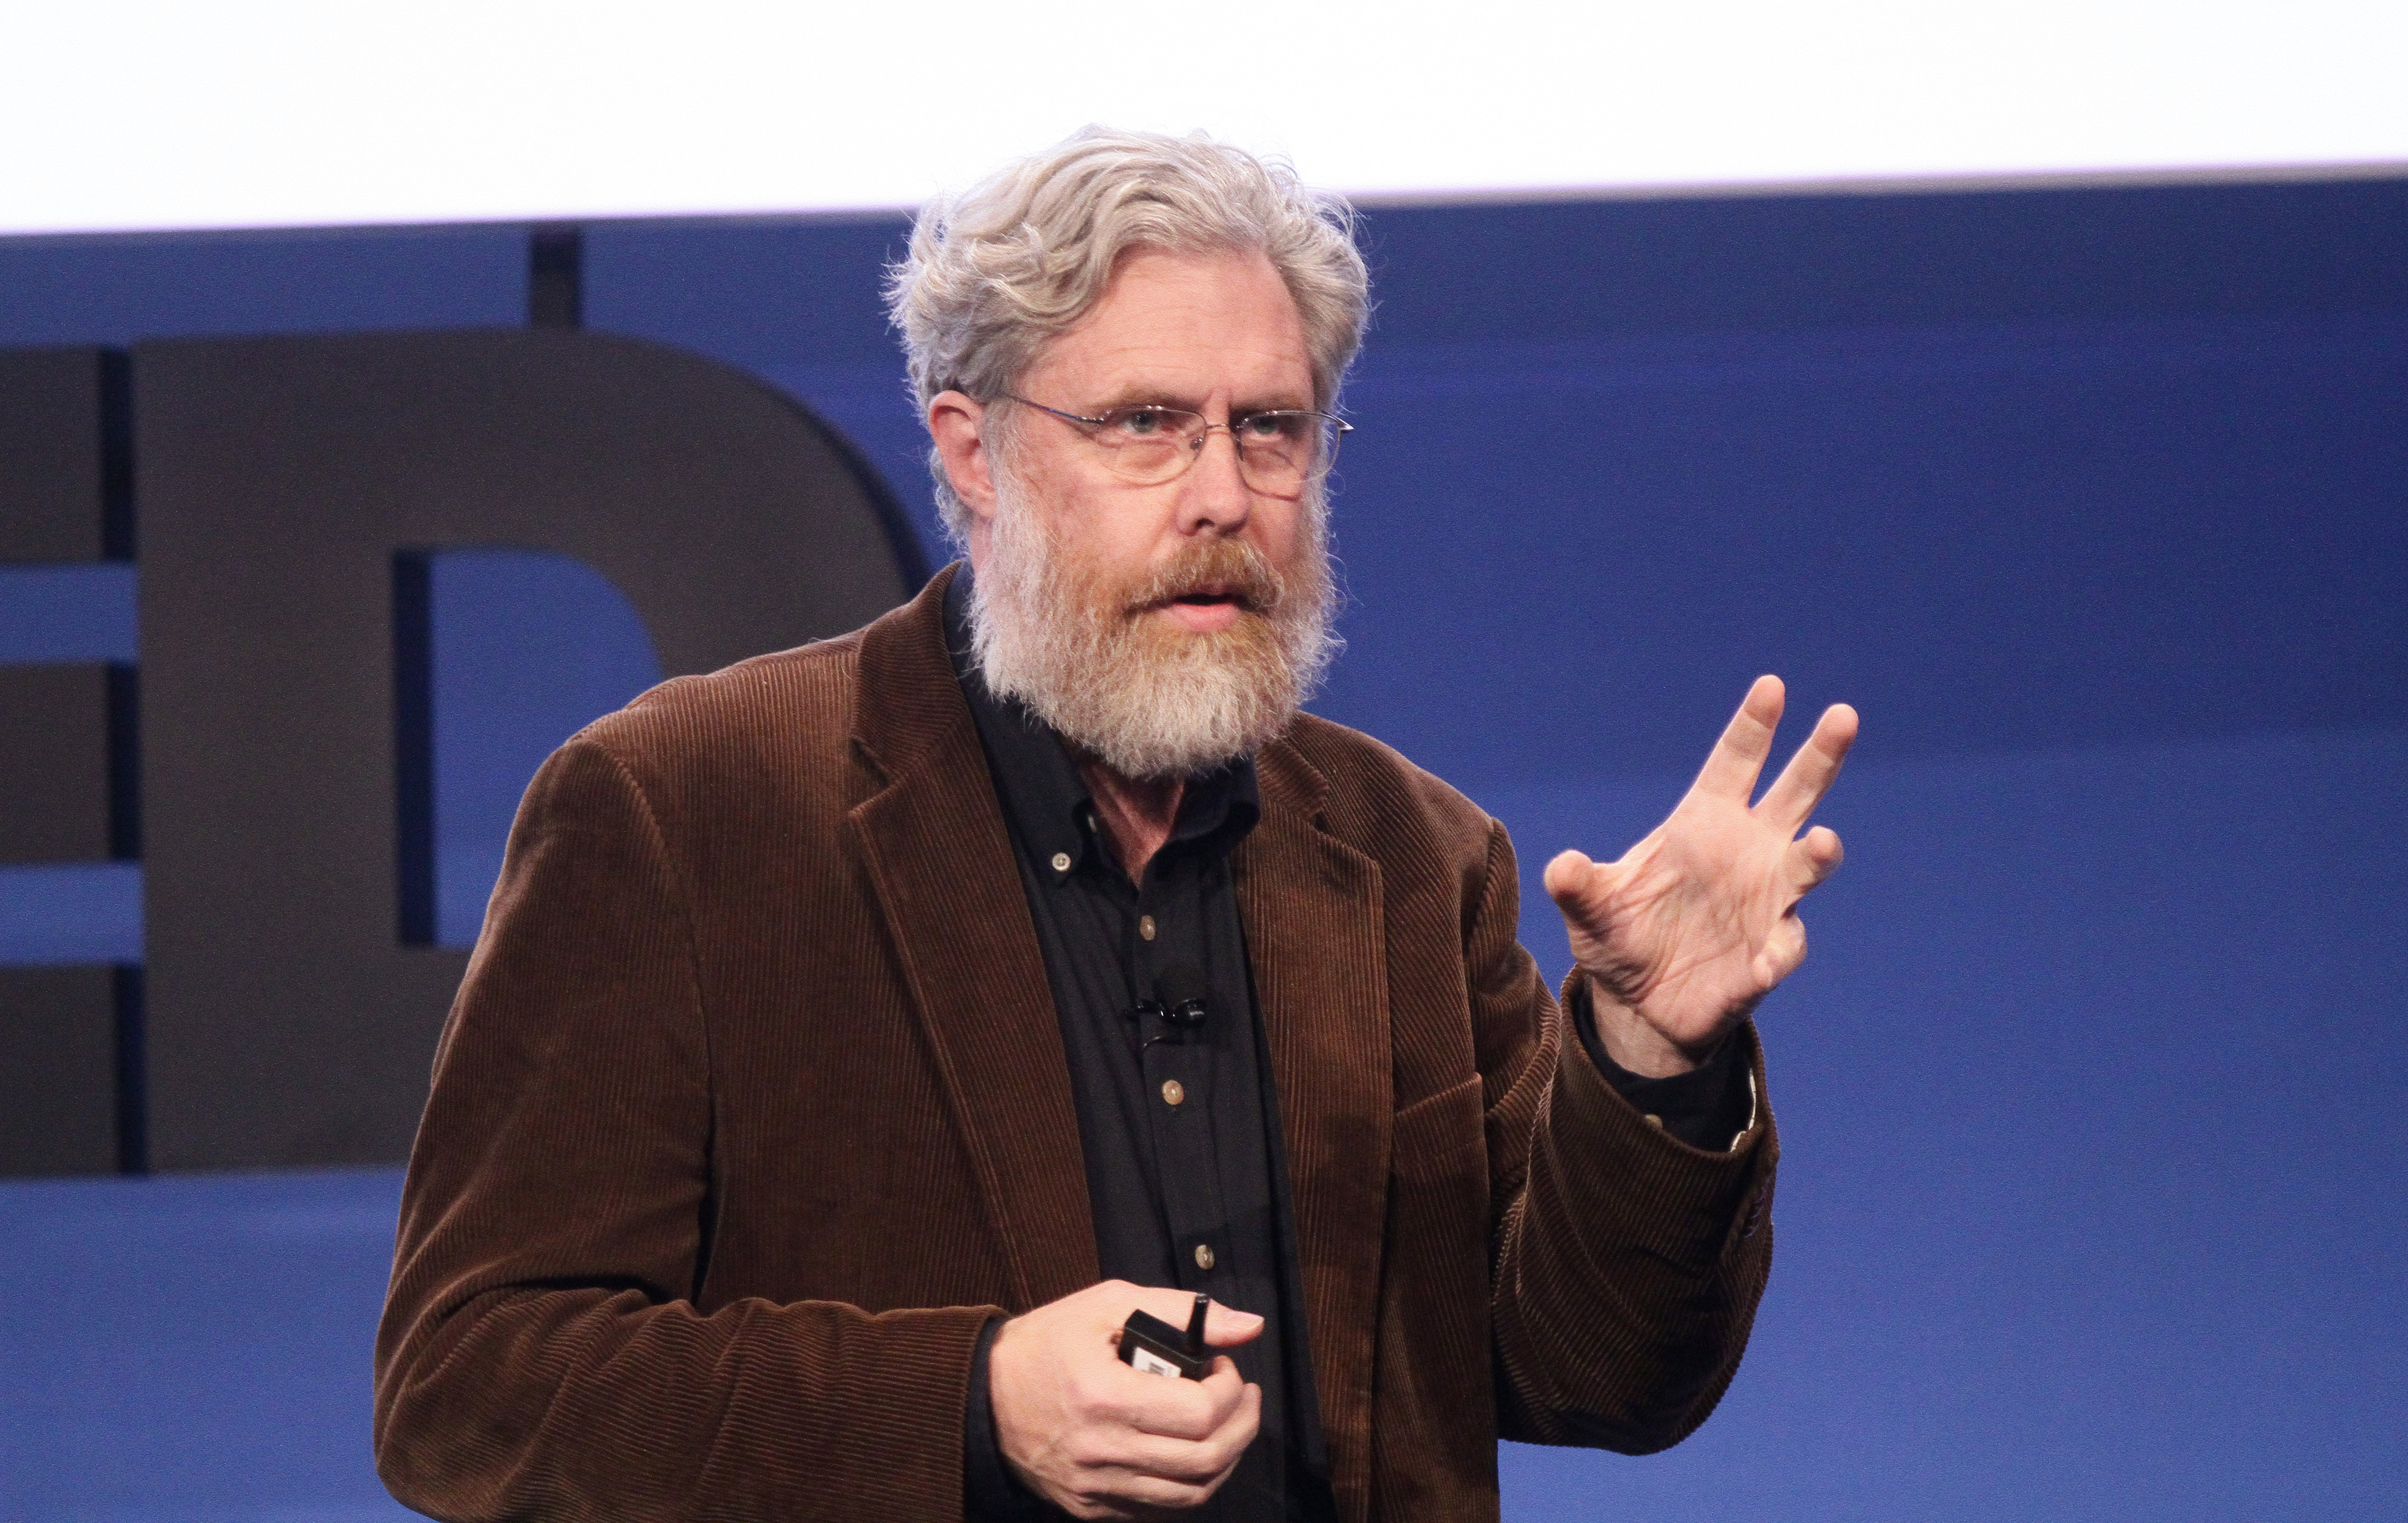 George Church at a 2010 TEDMED event. Credit: Jerod Harris and Sandy Huffaker